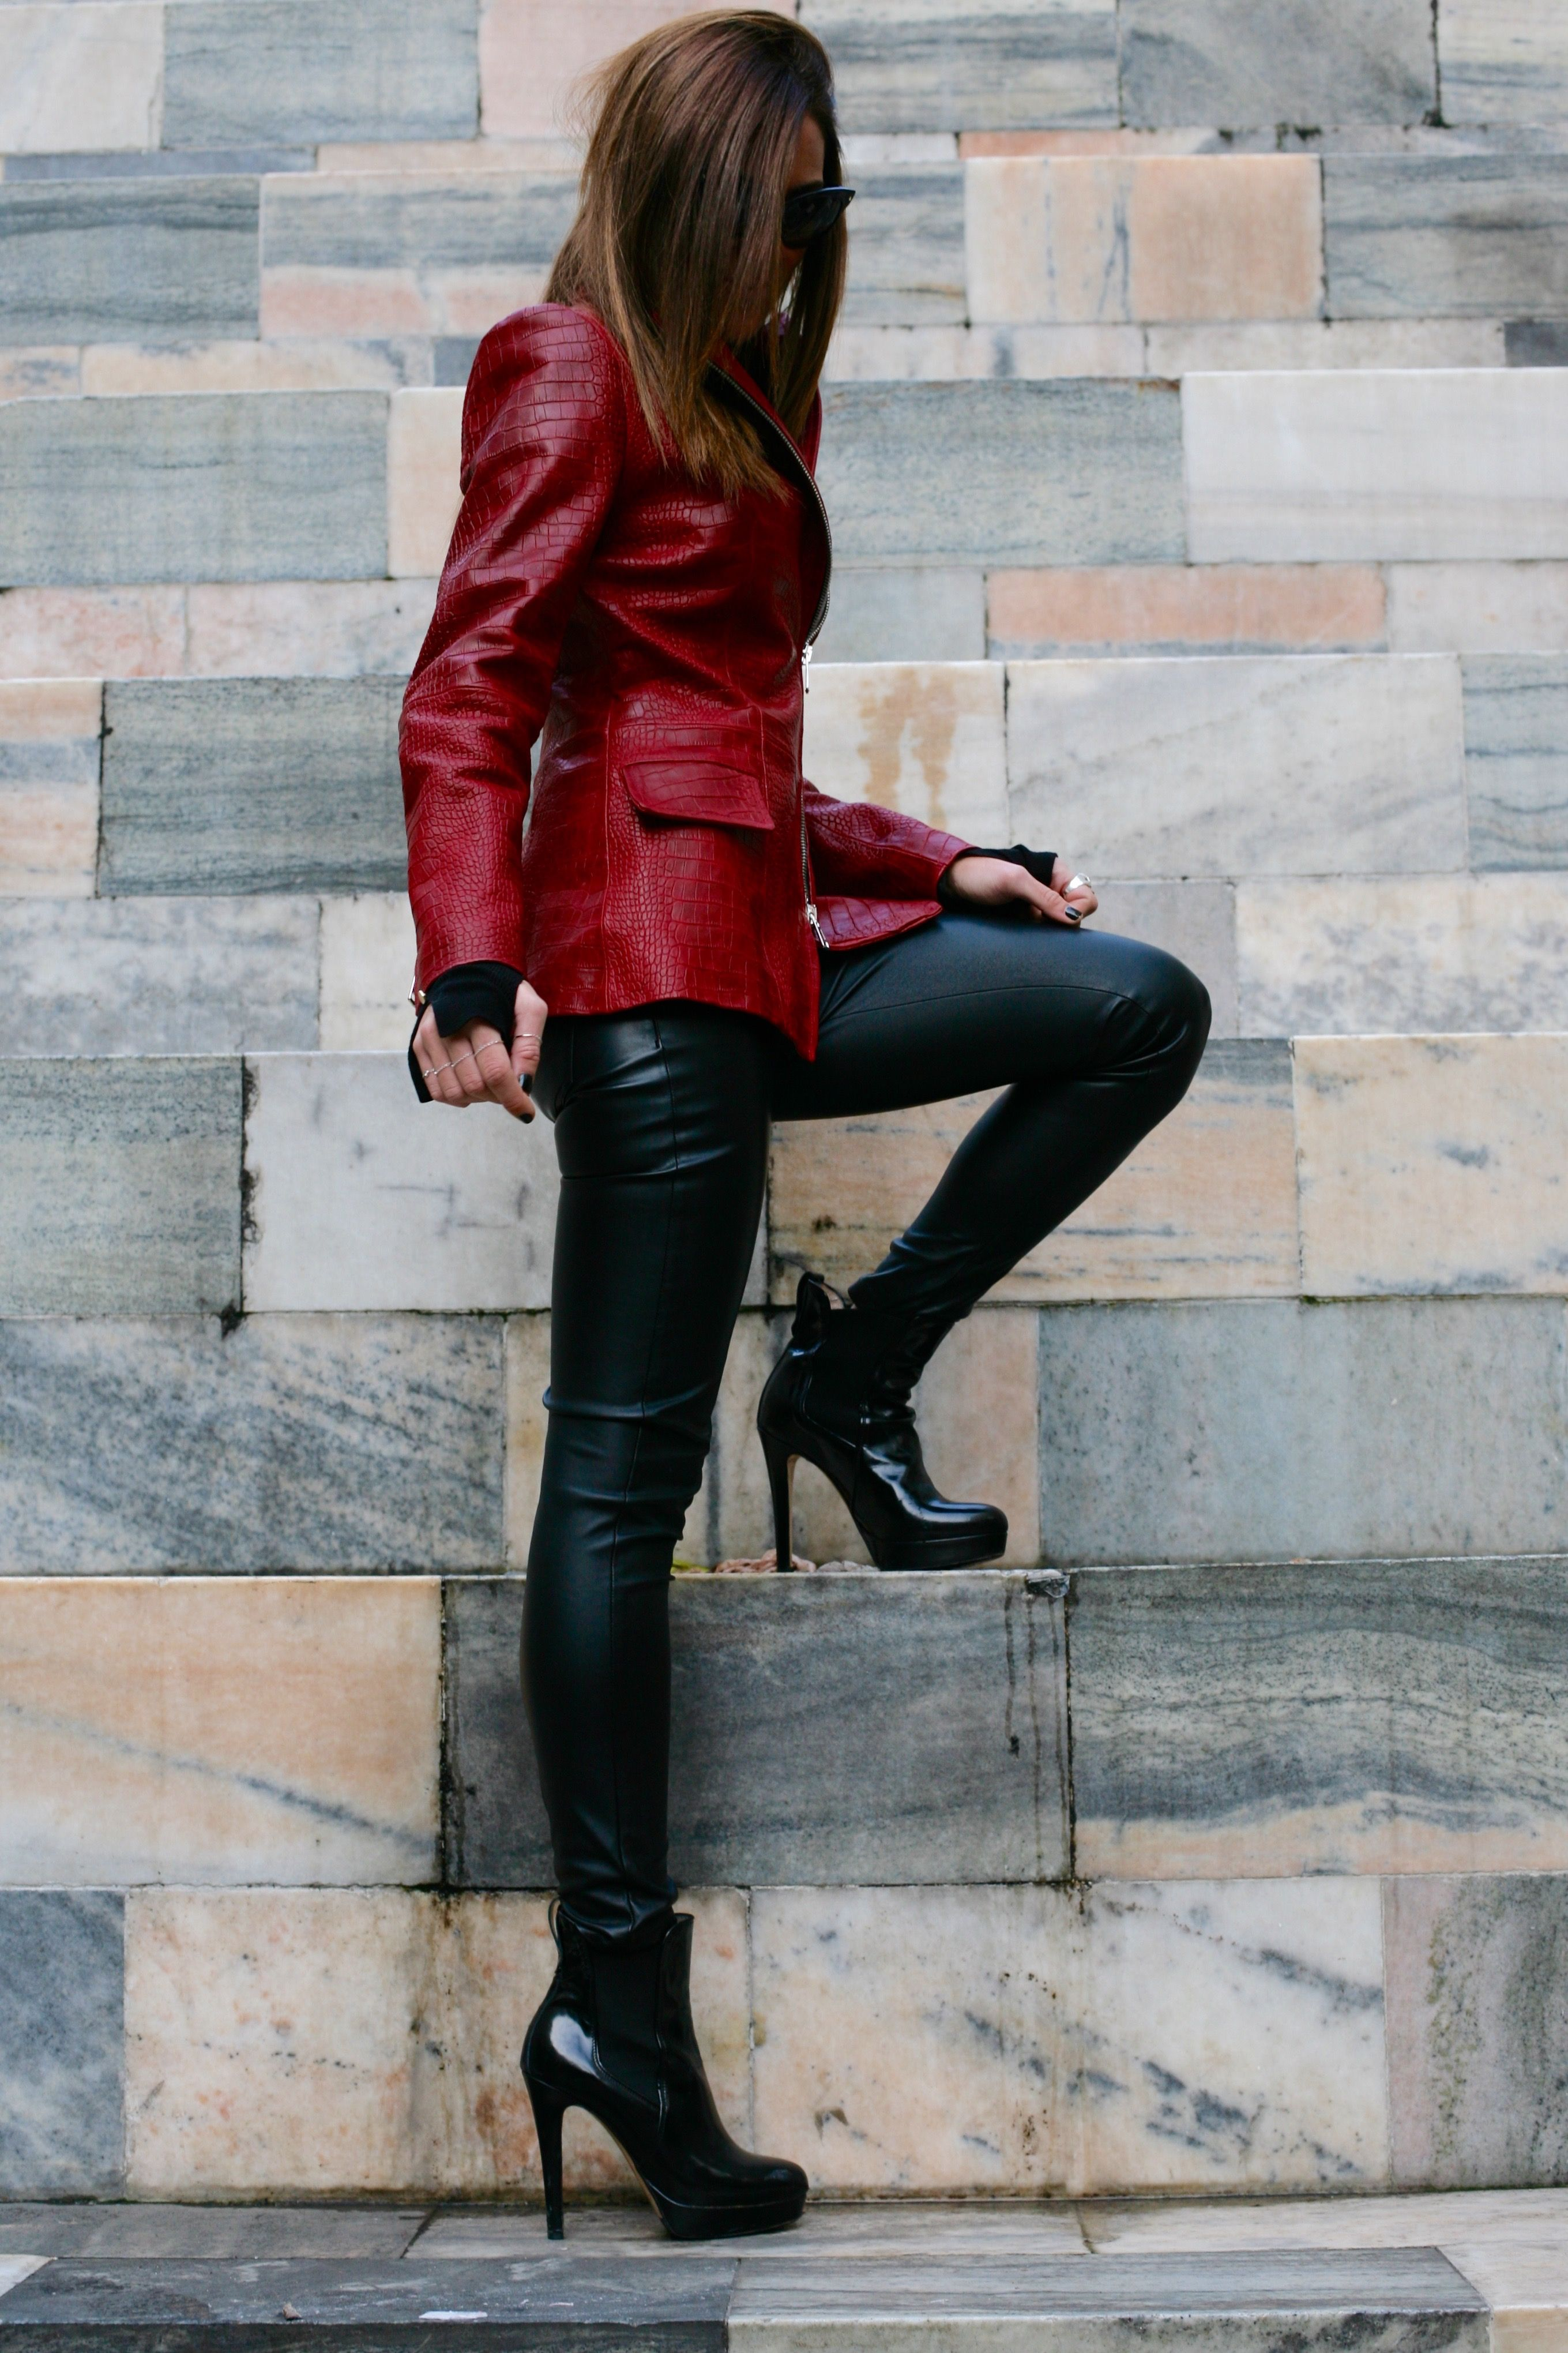 Fashion can be bought. Style, one must possess. #fashion #fashionquotes #style #styletips #designerfashion #leather #leatherjacket